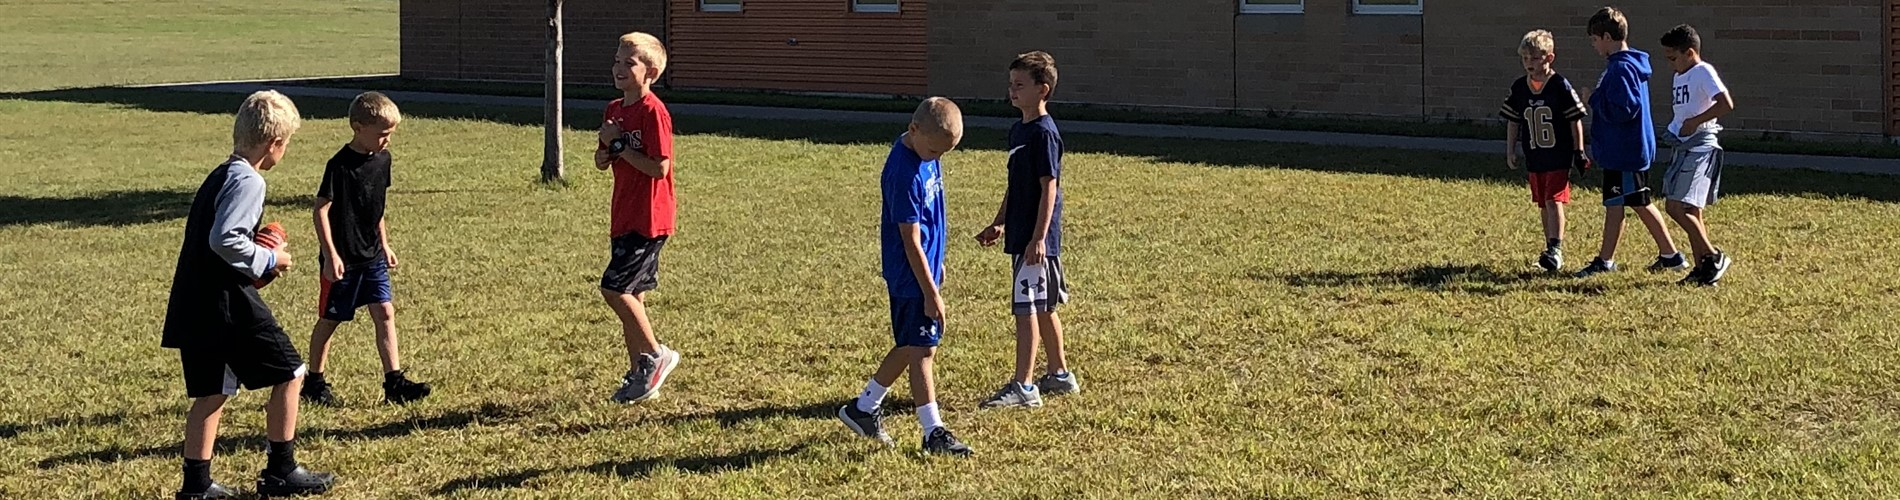 Elementary students play football at recess.